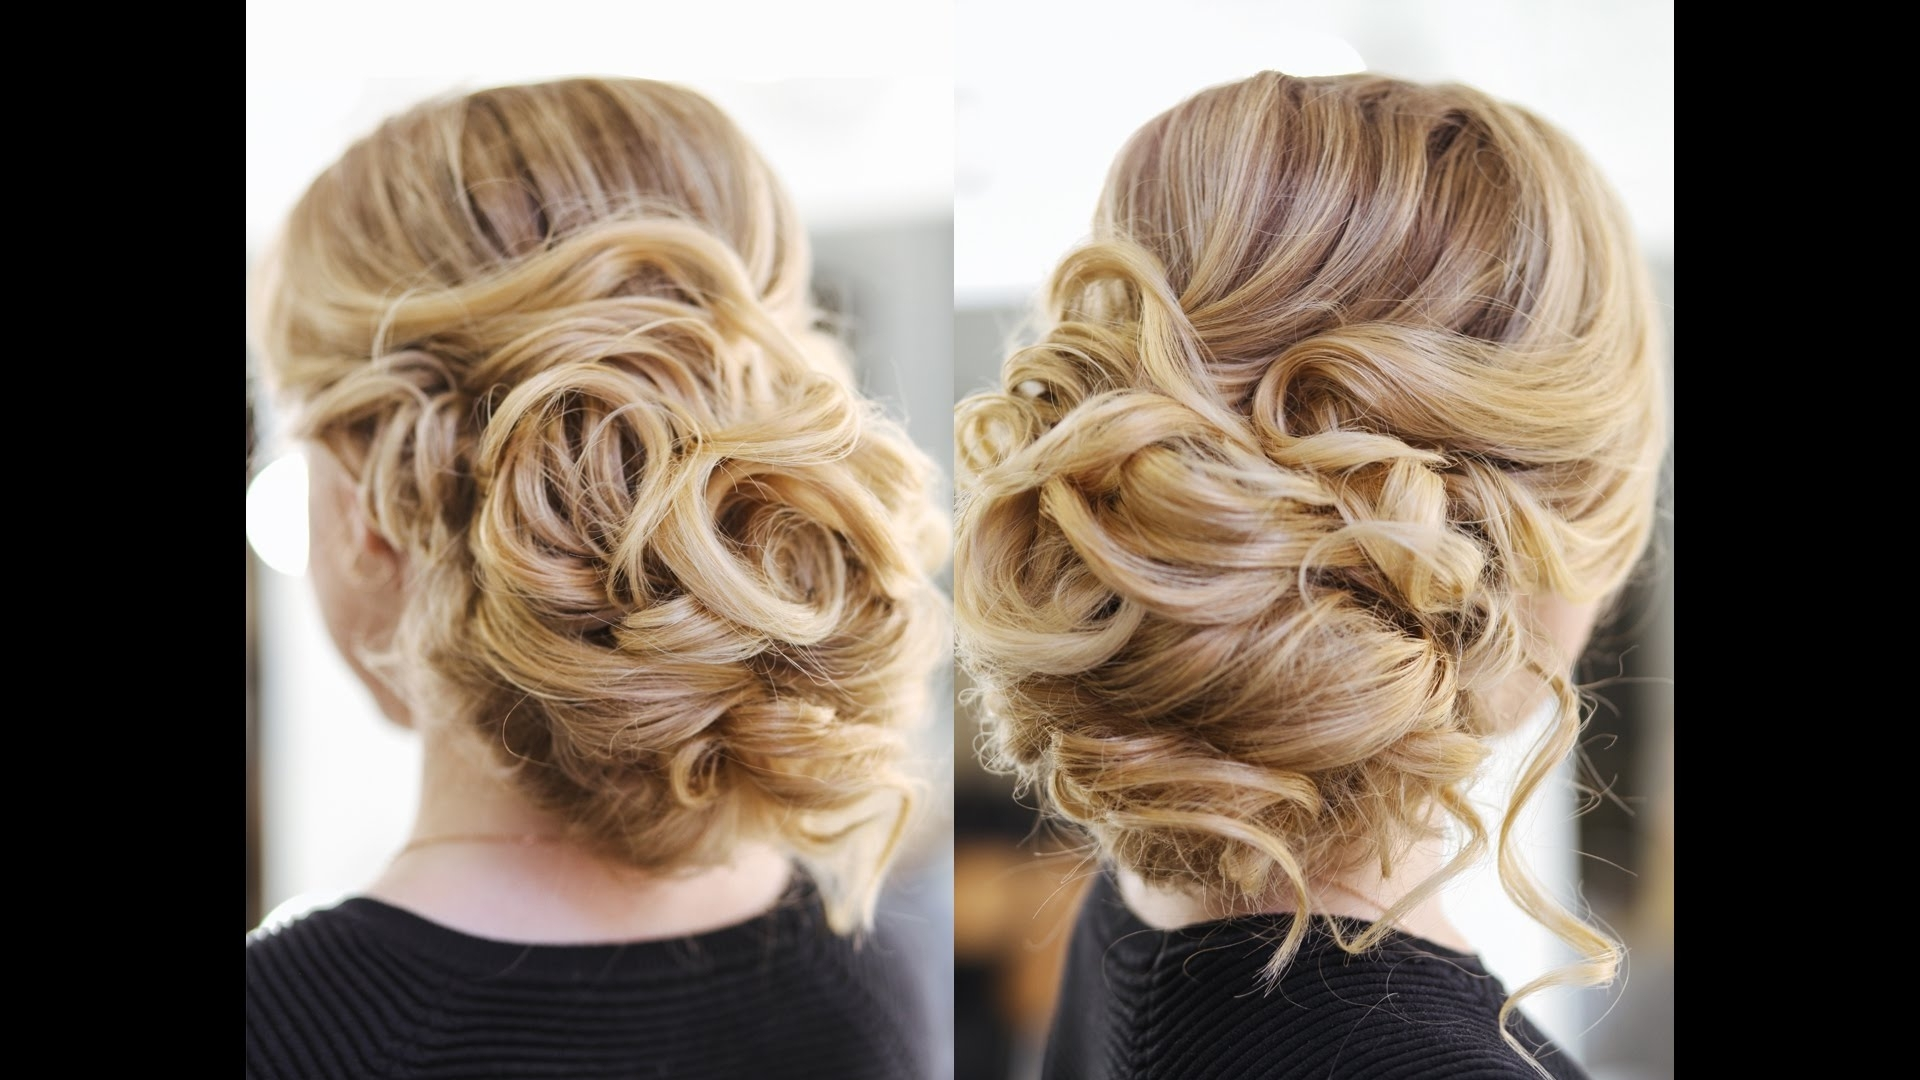 Easy Wedding Updo With Curls Prom Hairstyles Hair Tutorial – Youtube Pertaining To Preferred Updos With Curls Wedding Hairstyles (Gallery 7 of 15)